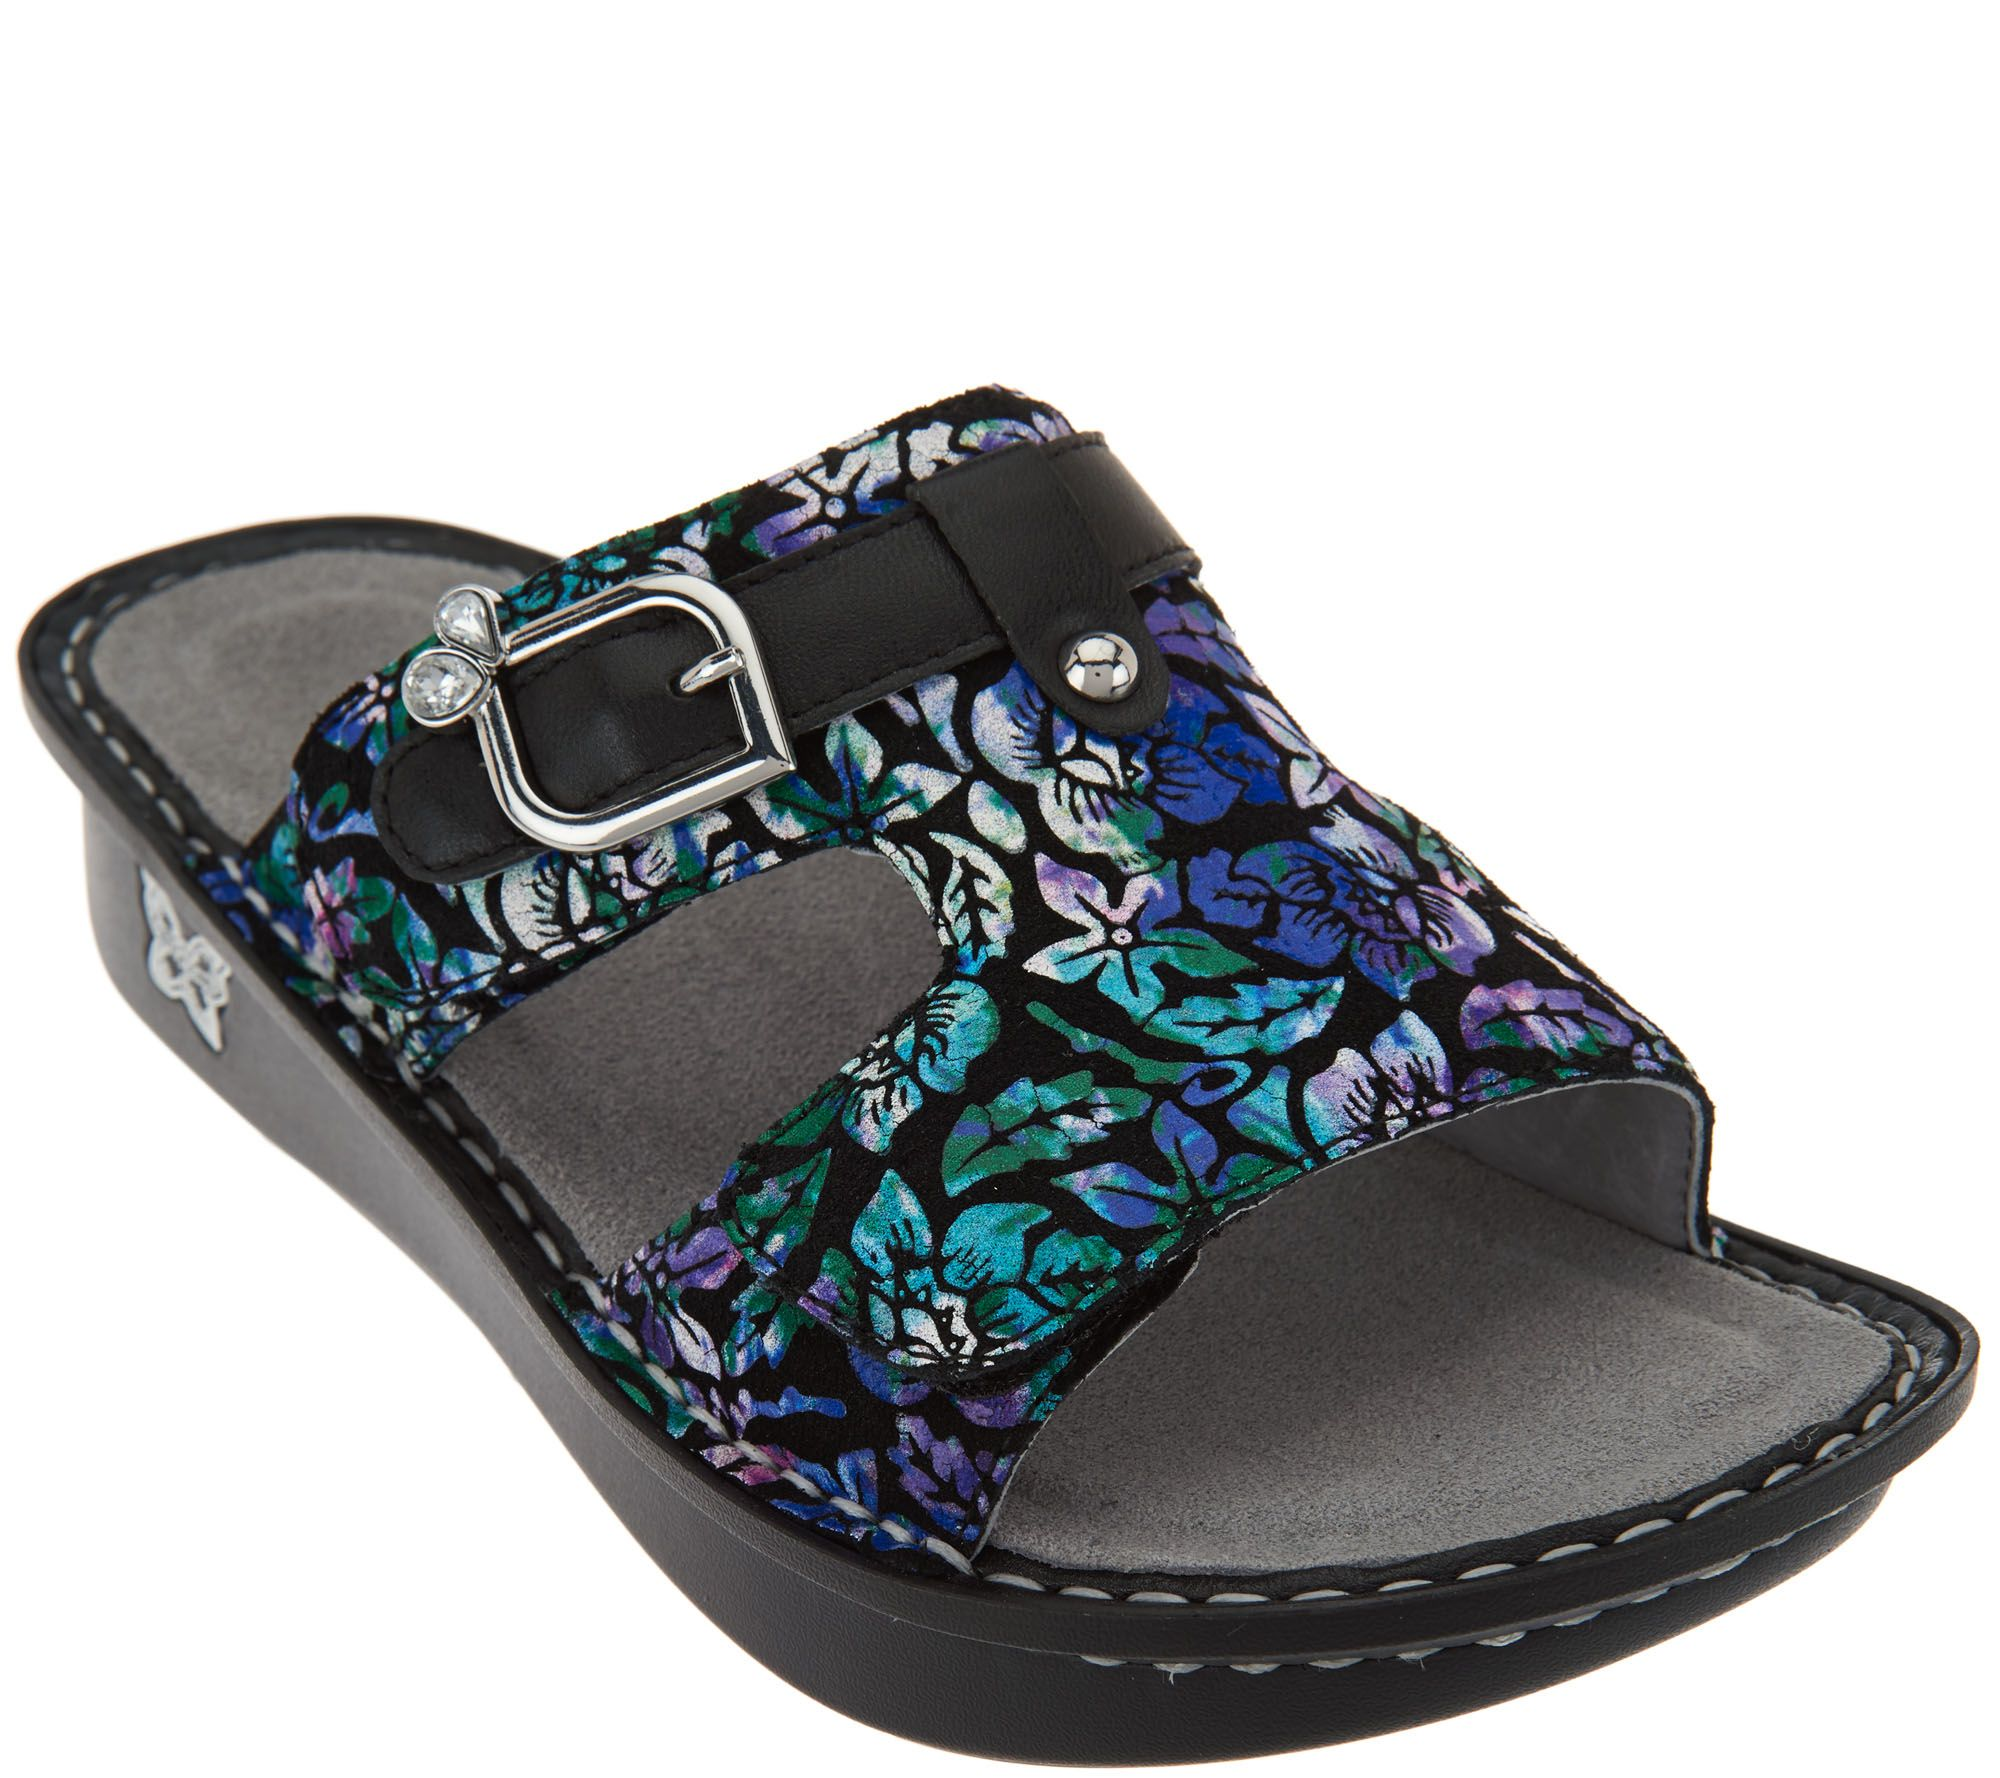 Alegria Leather Adjustable Slide Sandals - Peggy - Page 1 — QVC.com 32d86343ee7